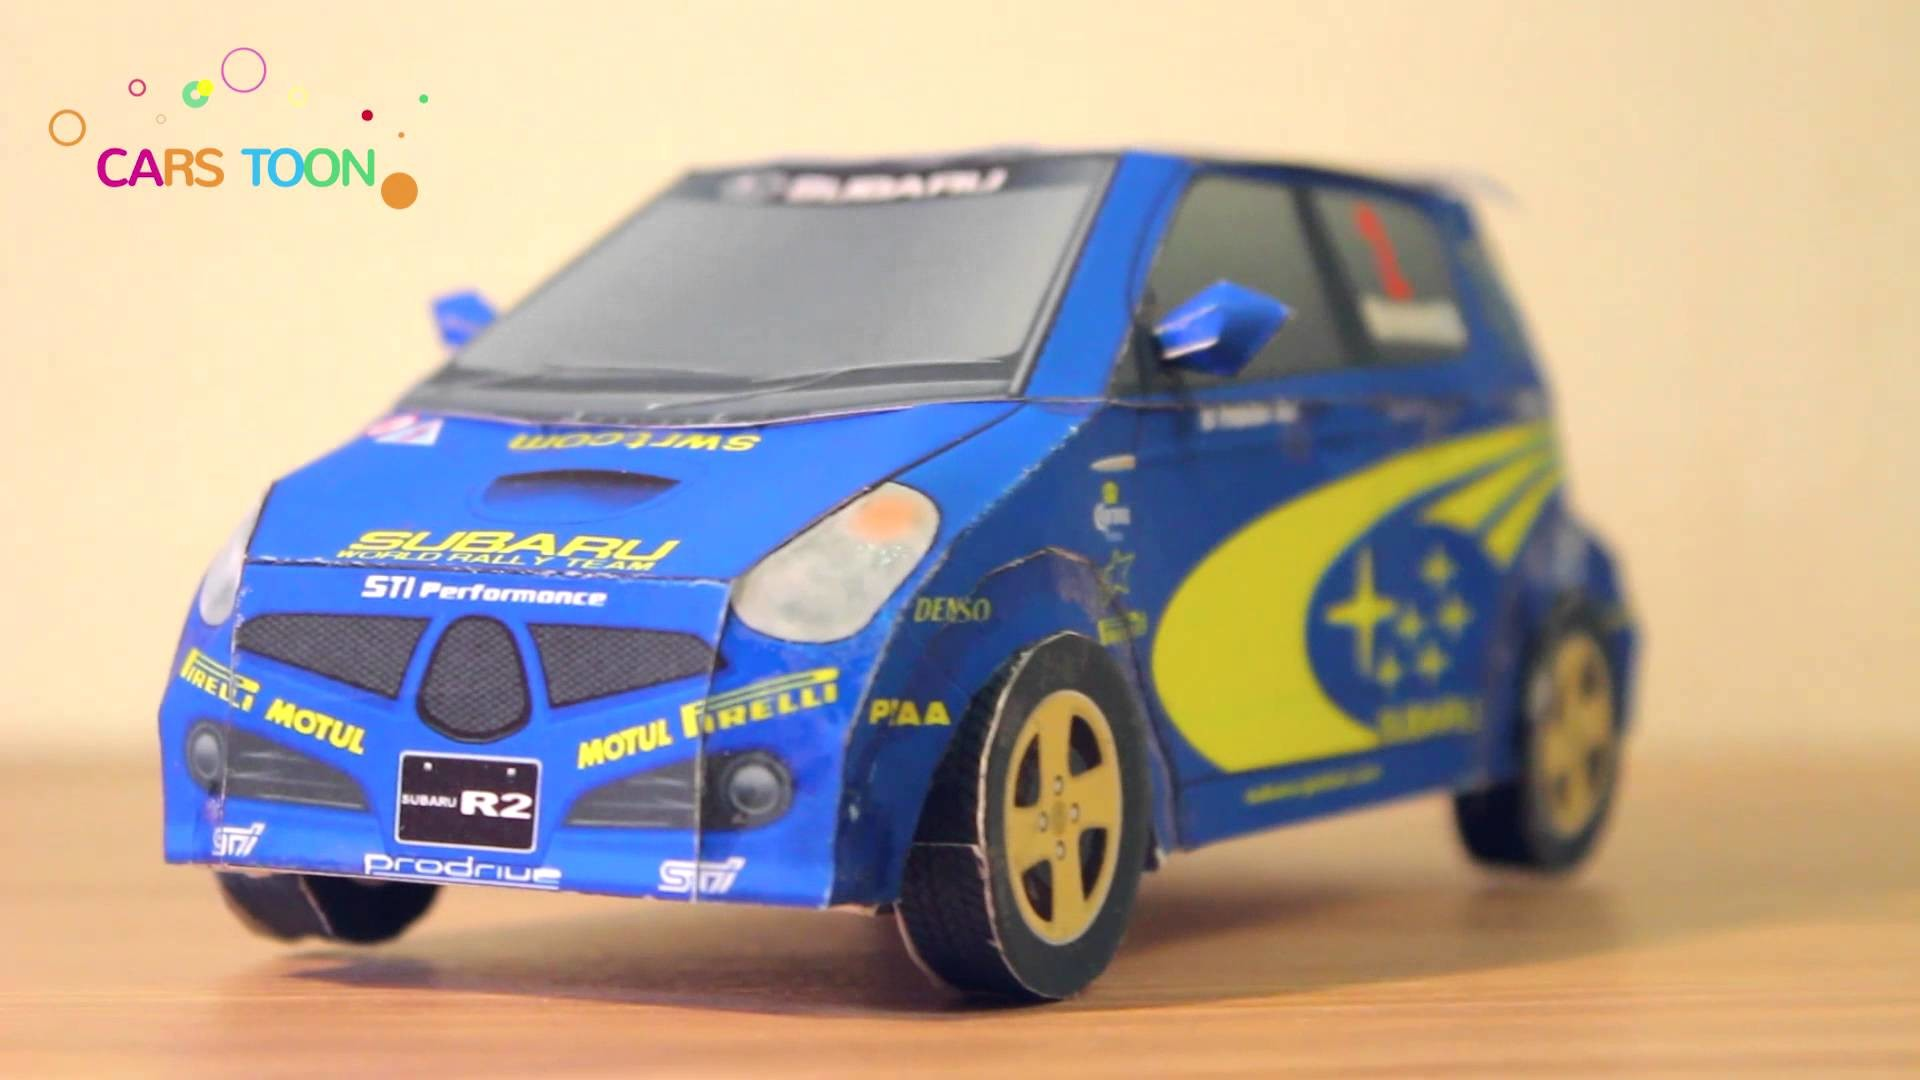 Сar toys. Cool papercraft Subaru R2. Cars for kids